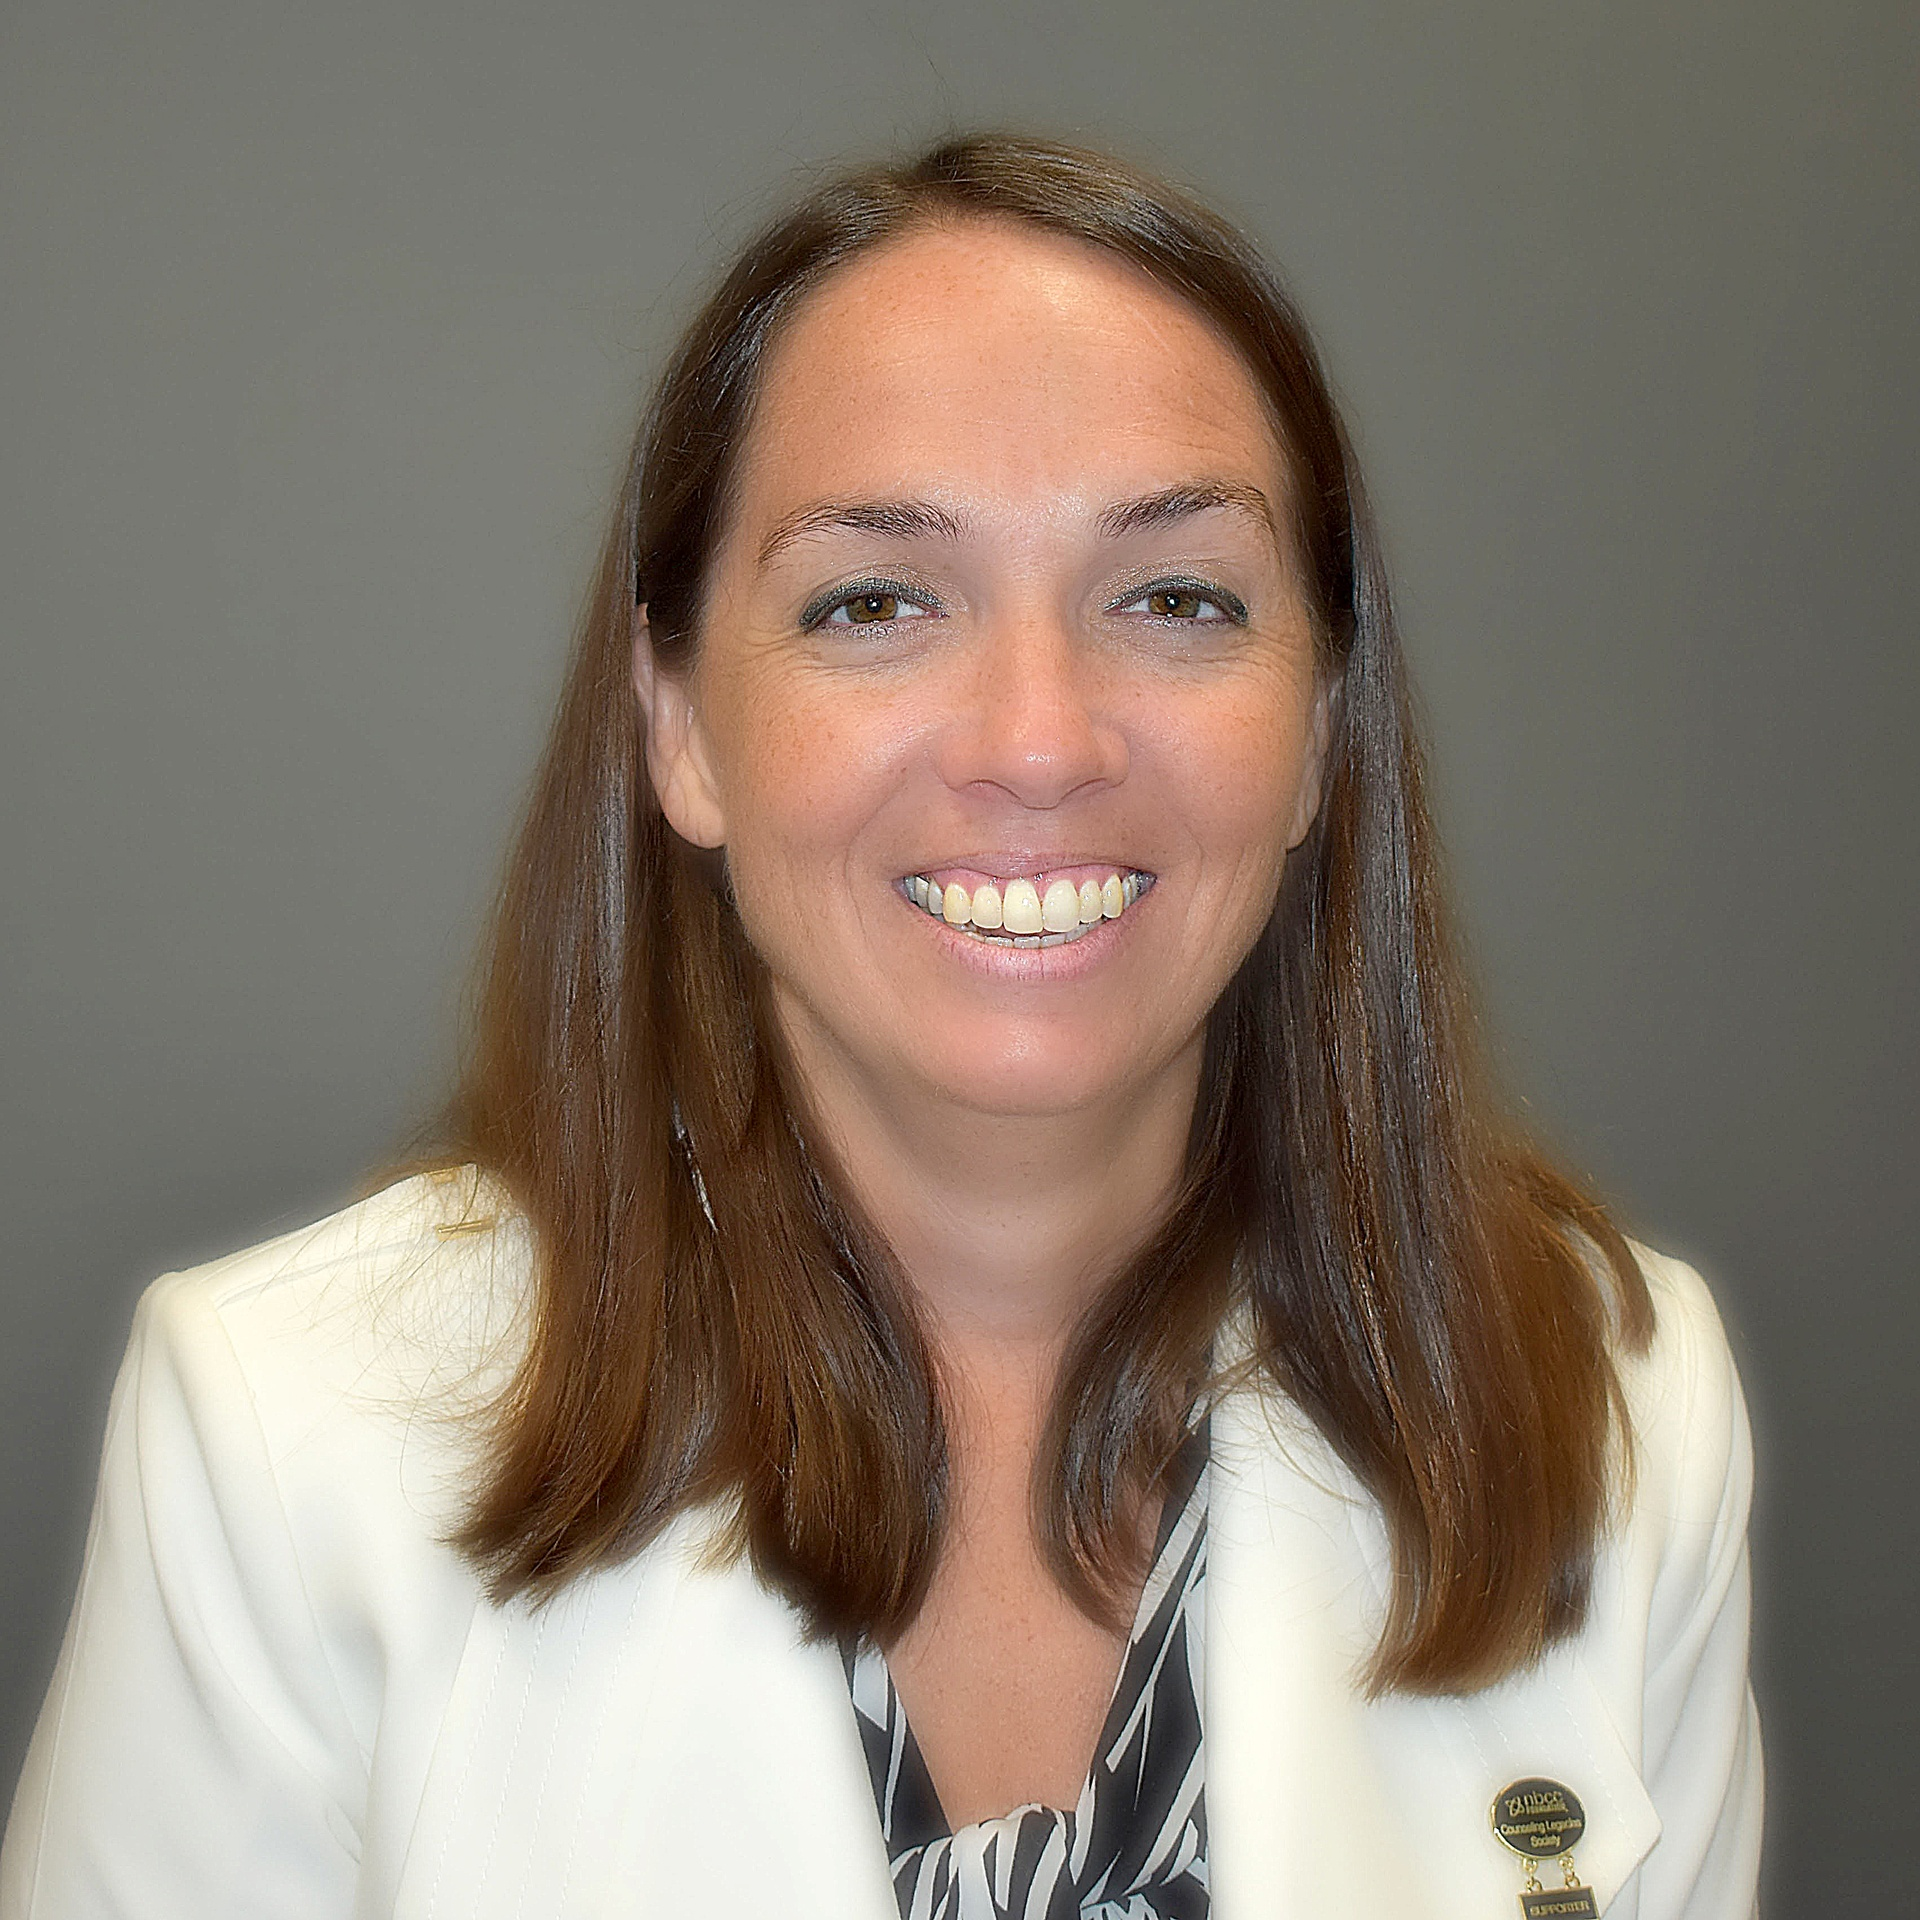 Q&A: Meet Dr. Kylie Dotson-Blake, President and CEO of NBCC and Affiliates